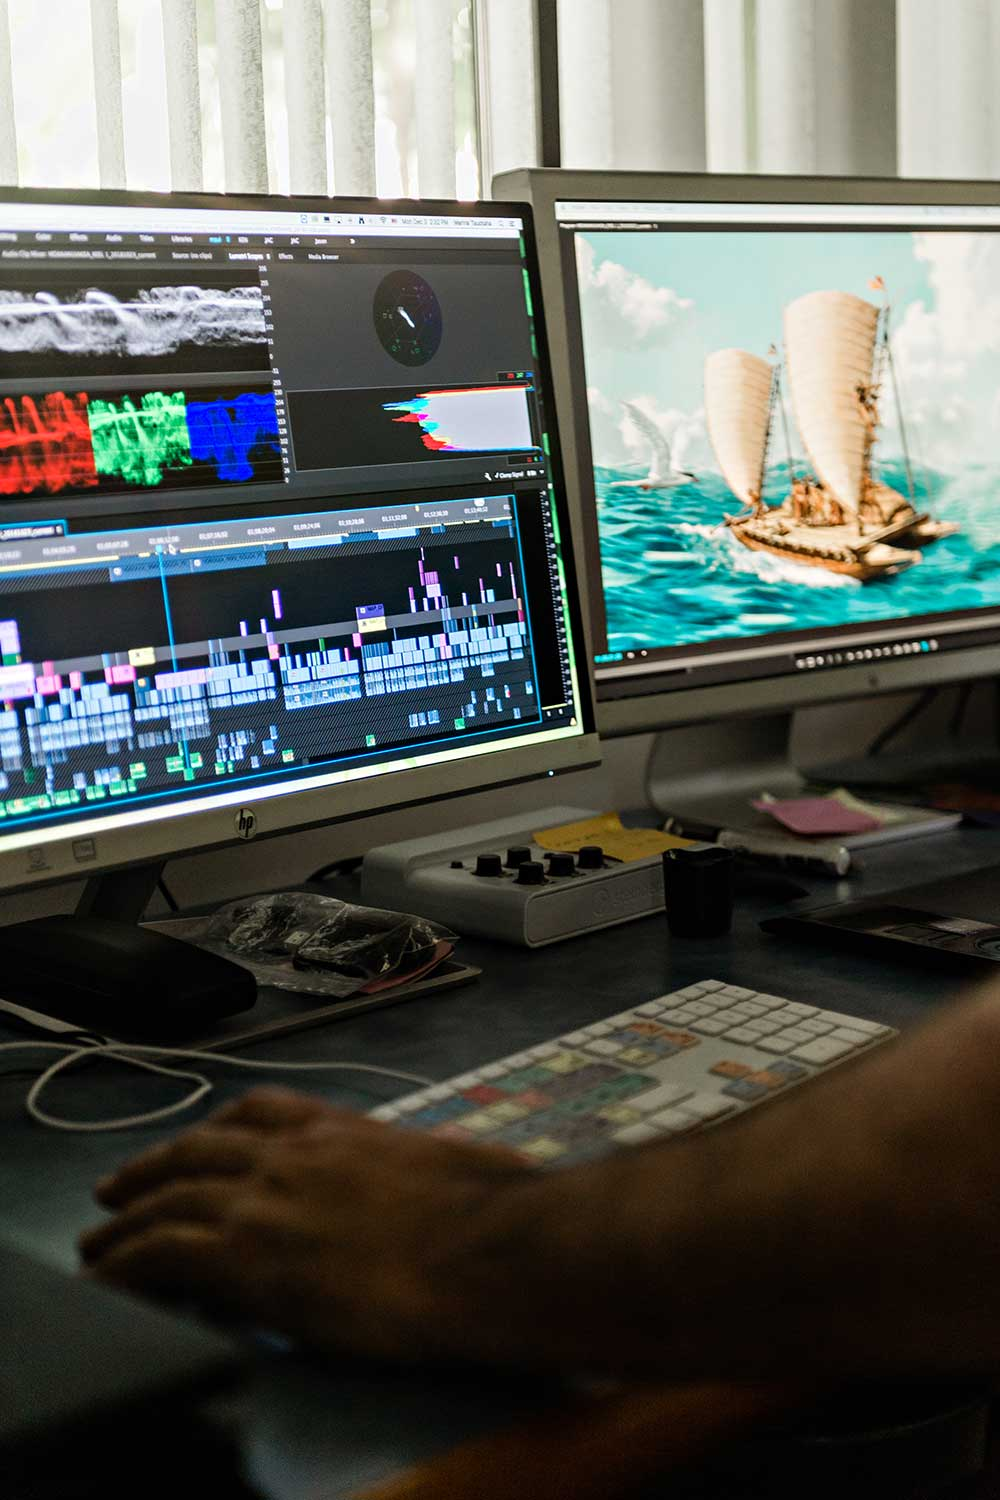 Director Nā'ālehu Anthony dedicated at least three years to capturing the emotions and lessons that the sea offered to those aboard the canoe.